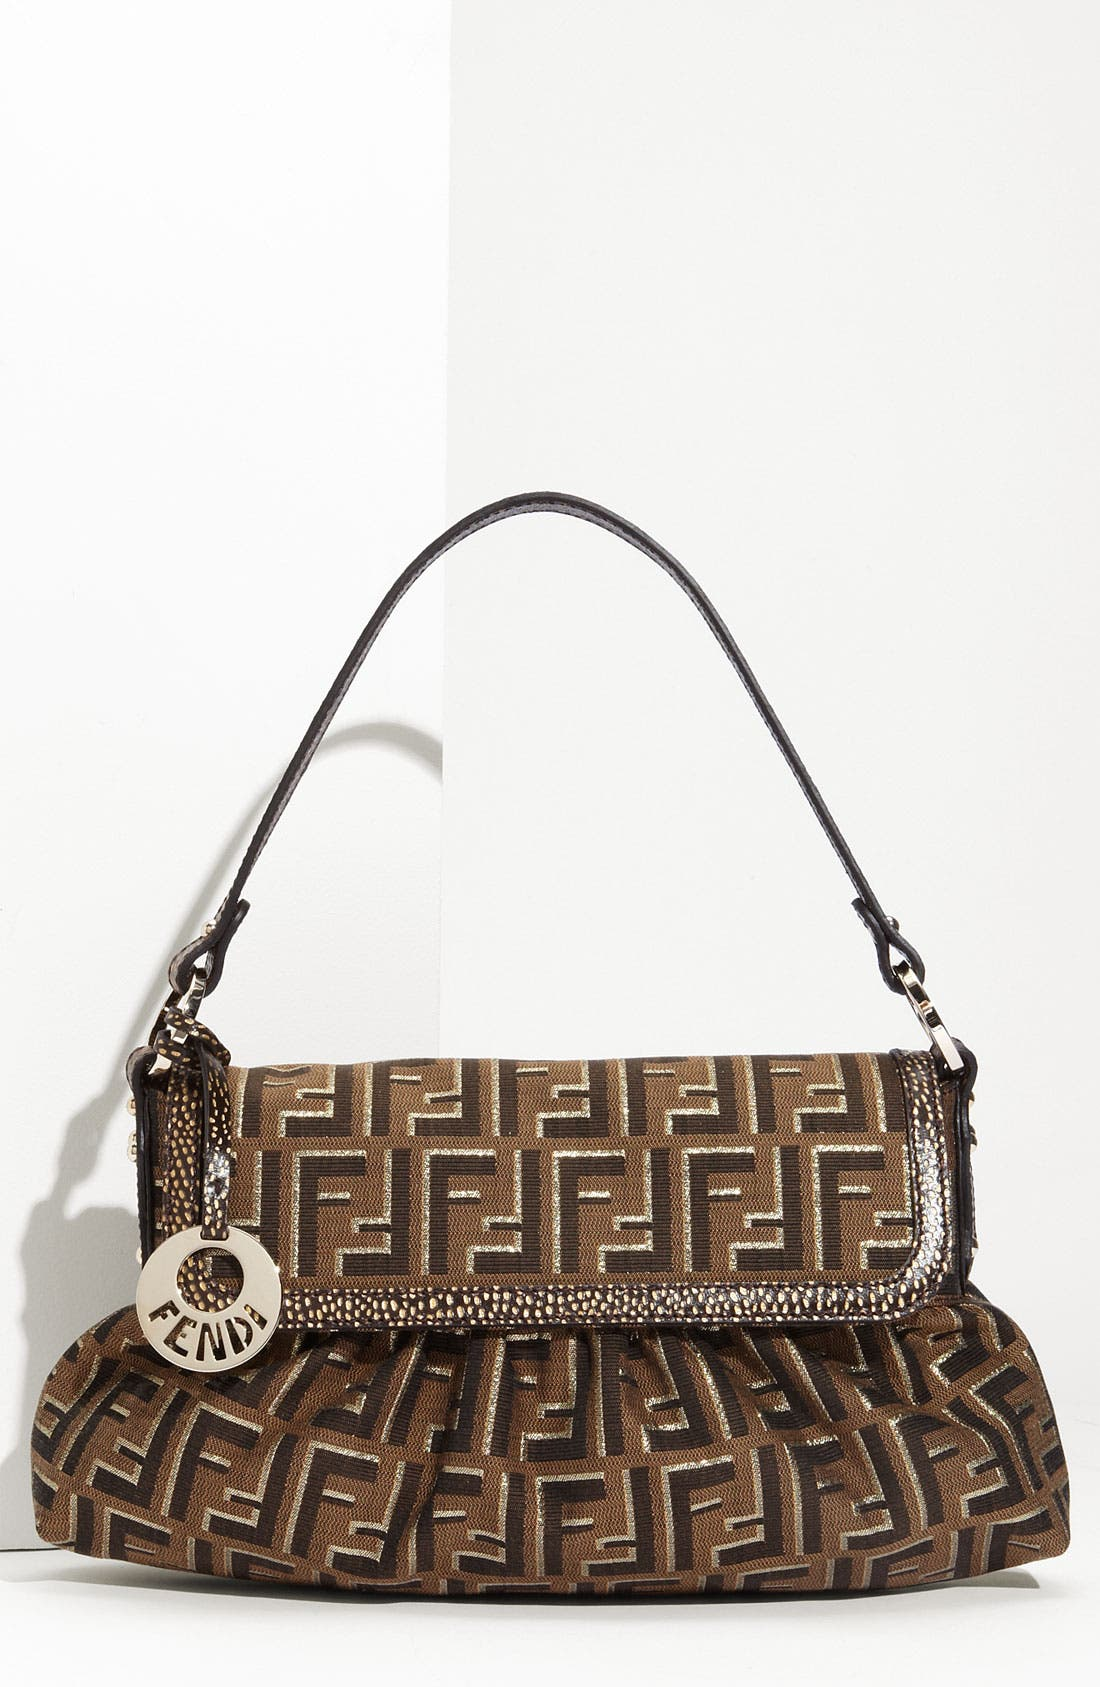 Main Image - Fendi 'Chef - Ombra' Flap Bag